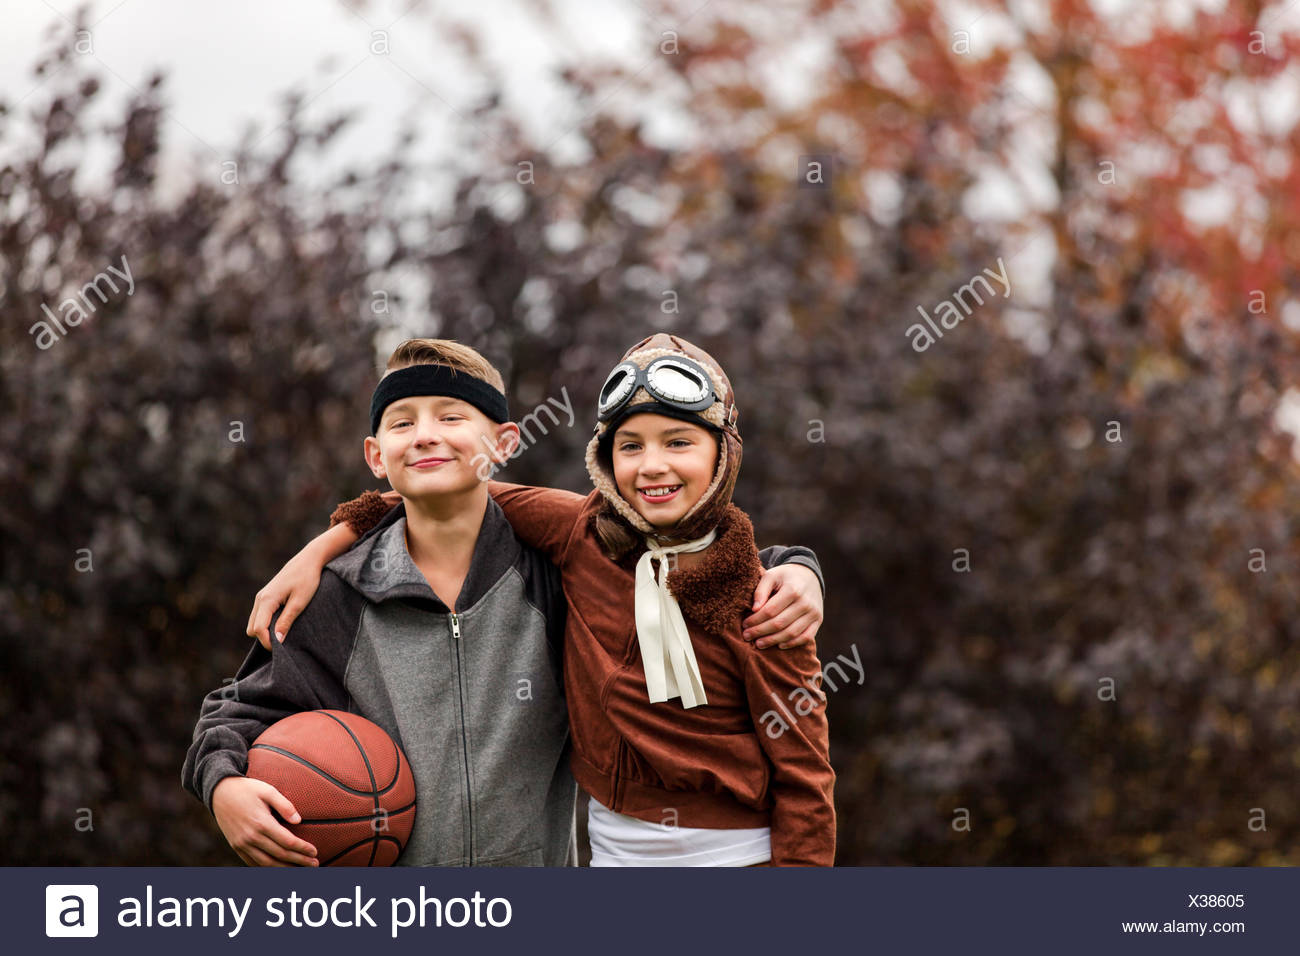 portrait of girl and twin brother wearing basketball player and